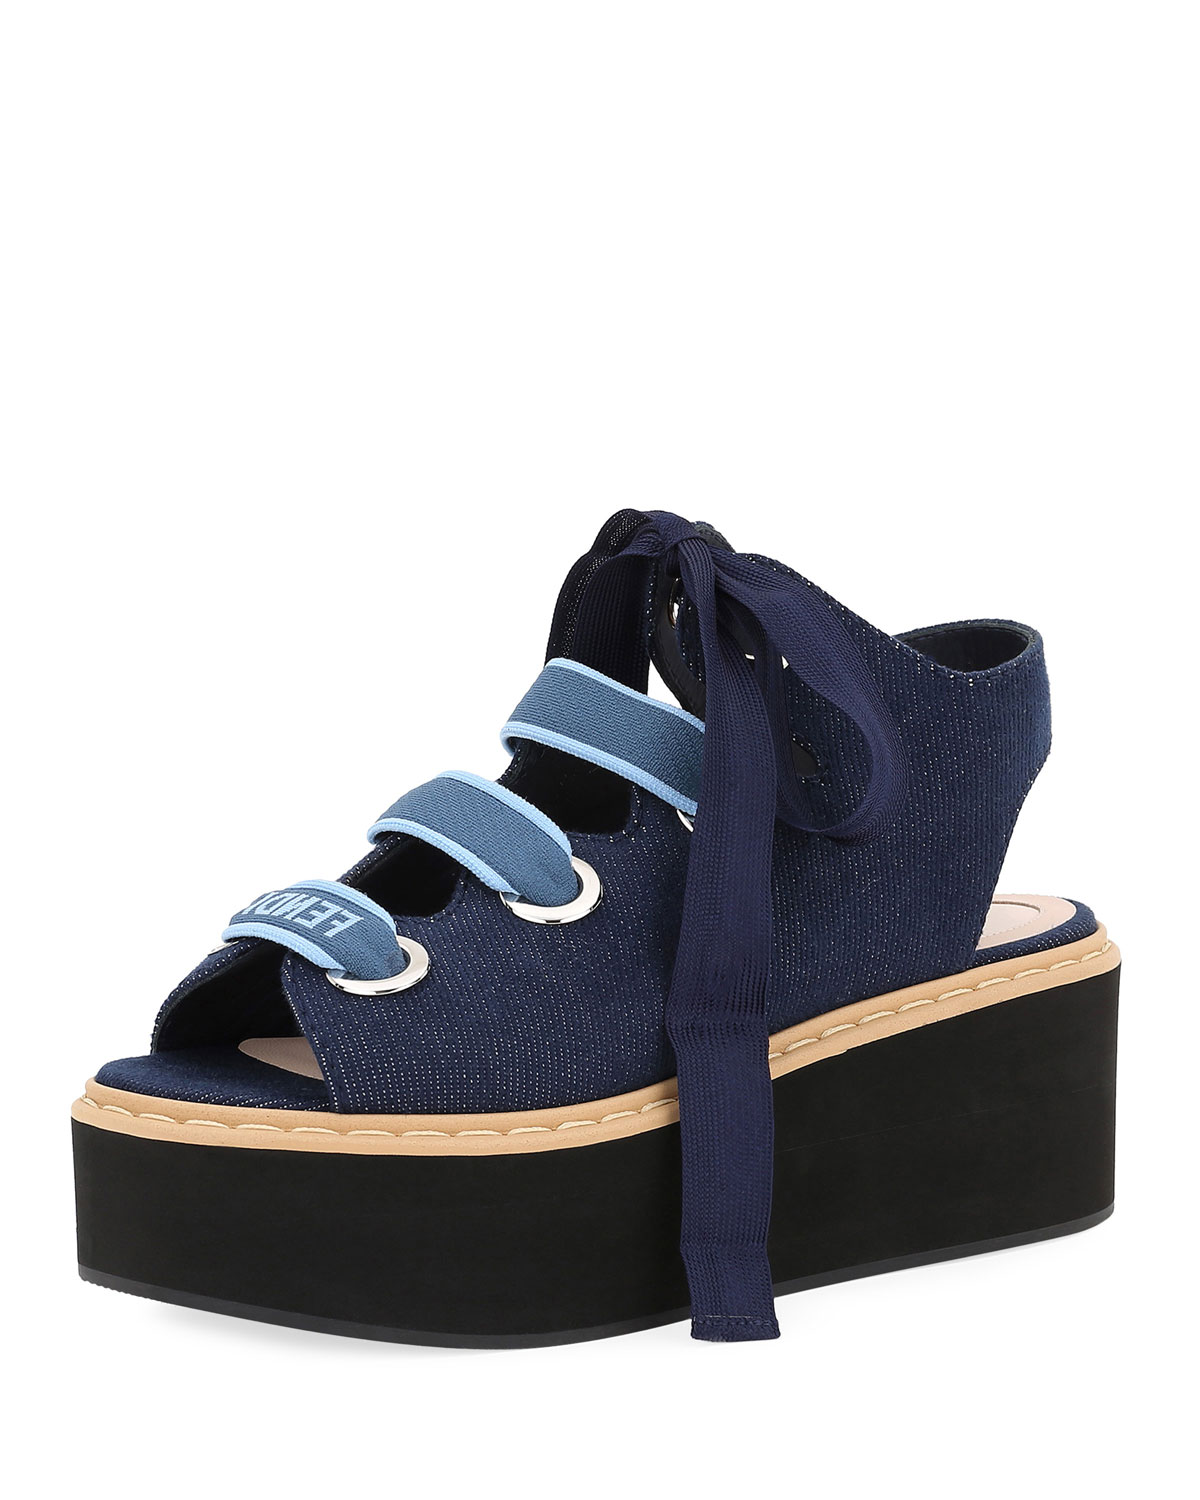 e449b0eab3977 Fendi Denim Lace-Up Platform Sandal